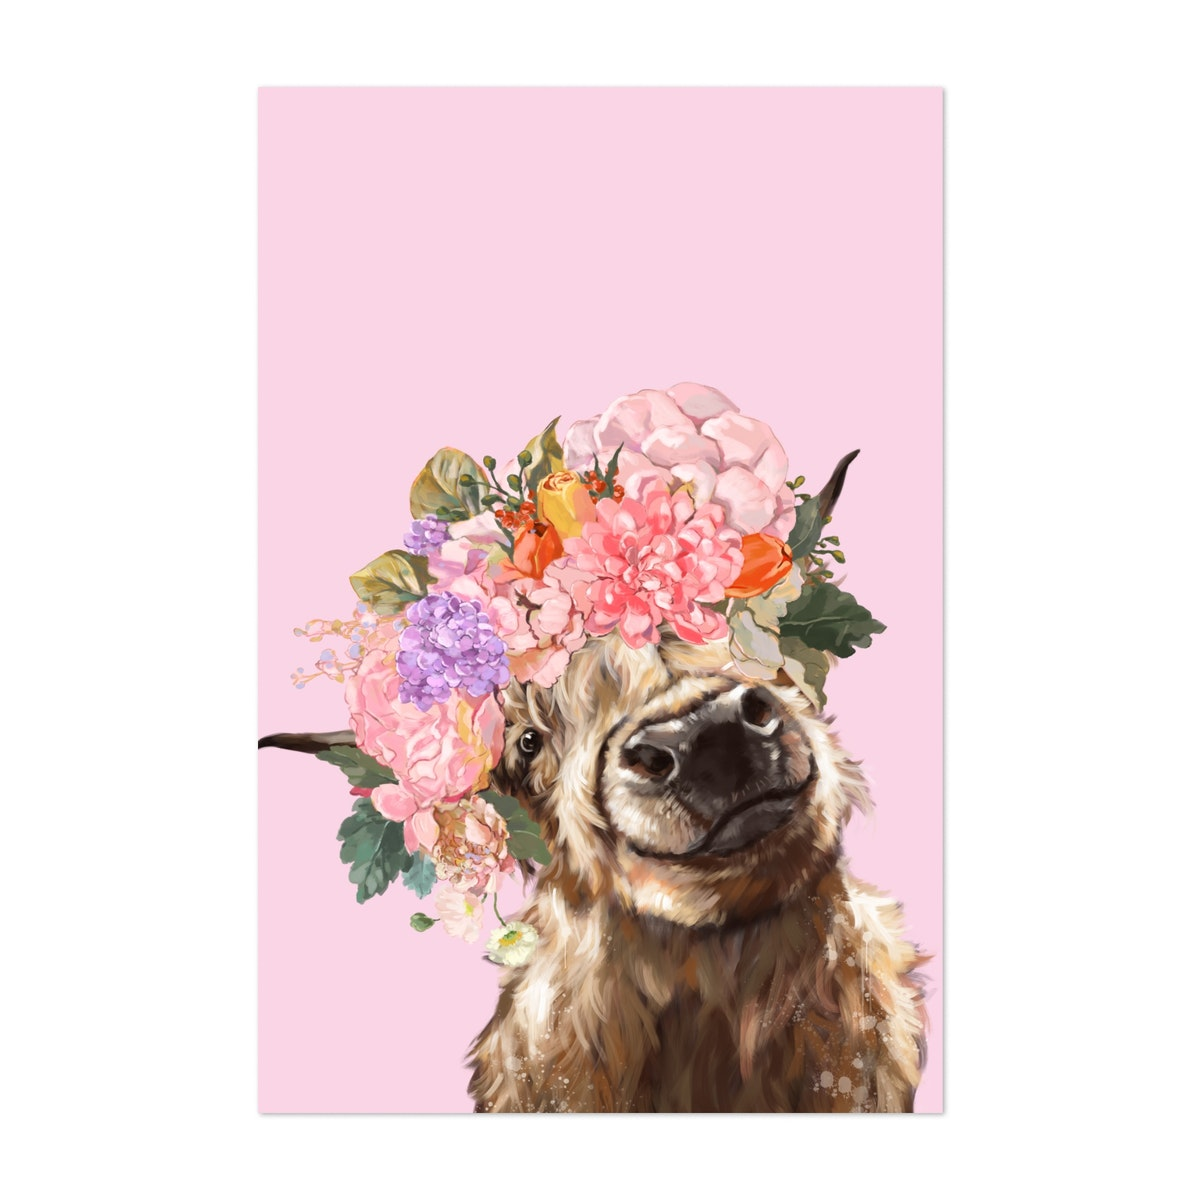 Highland Cow with Flower Crown